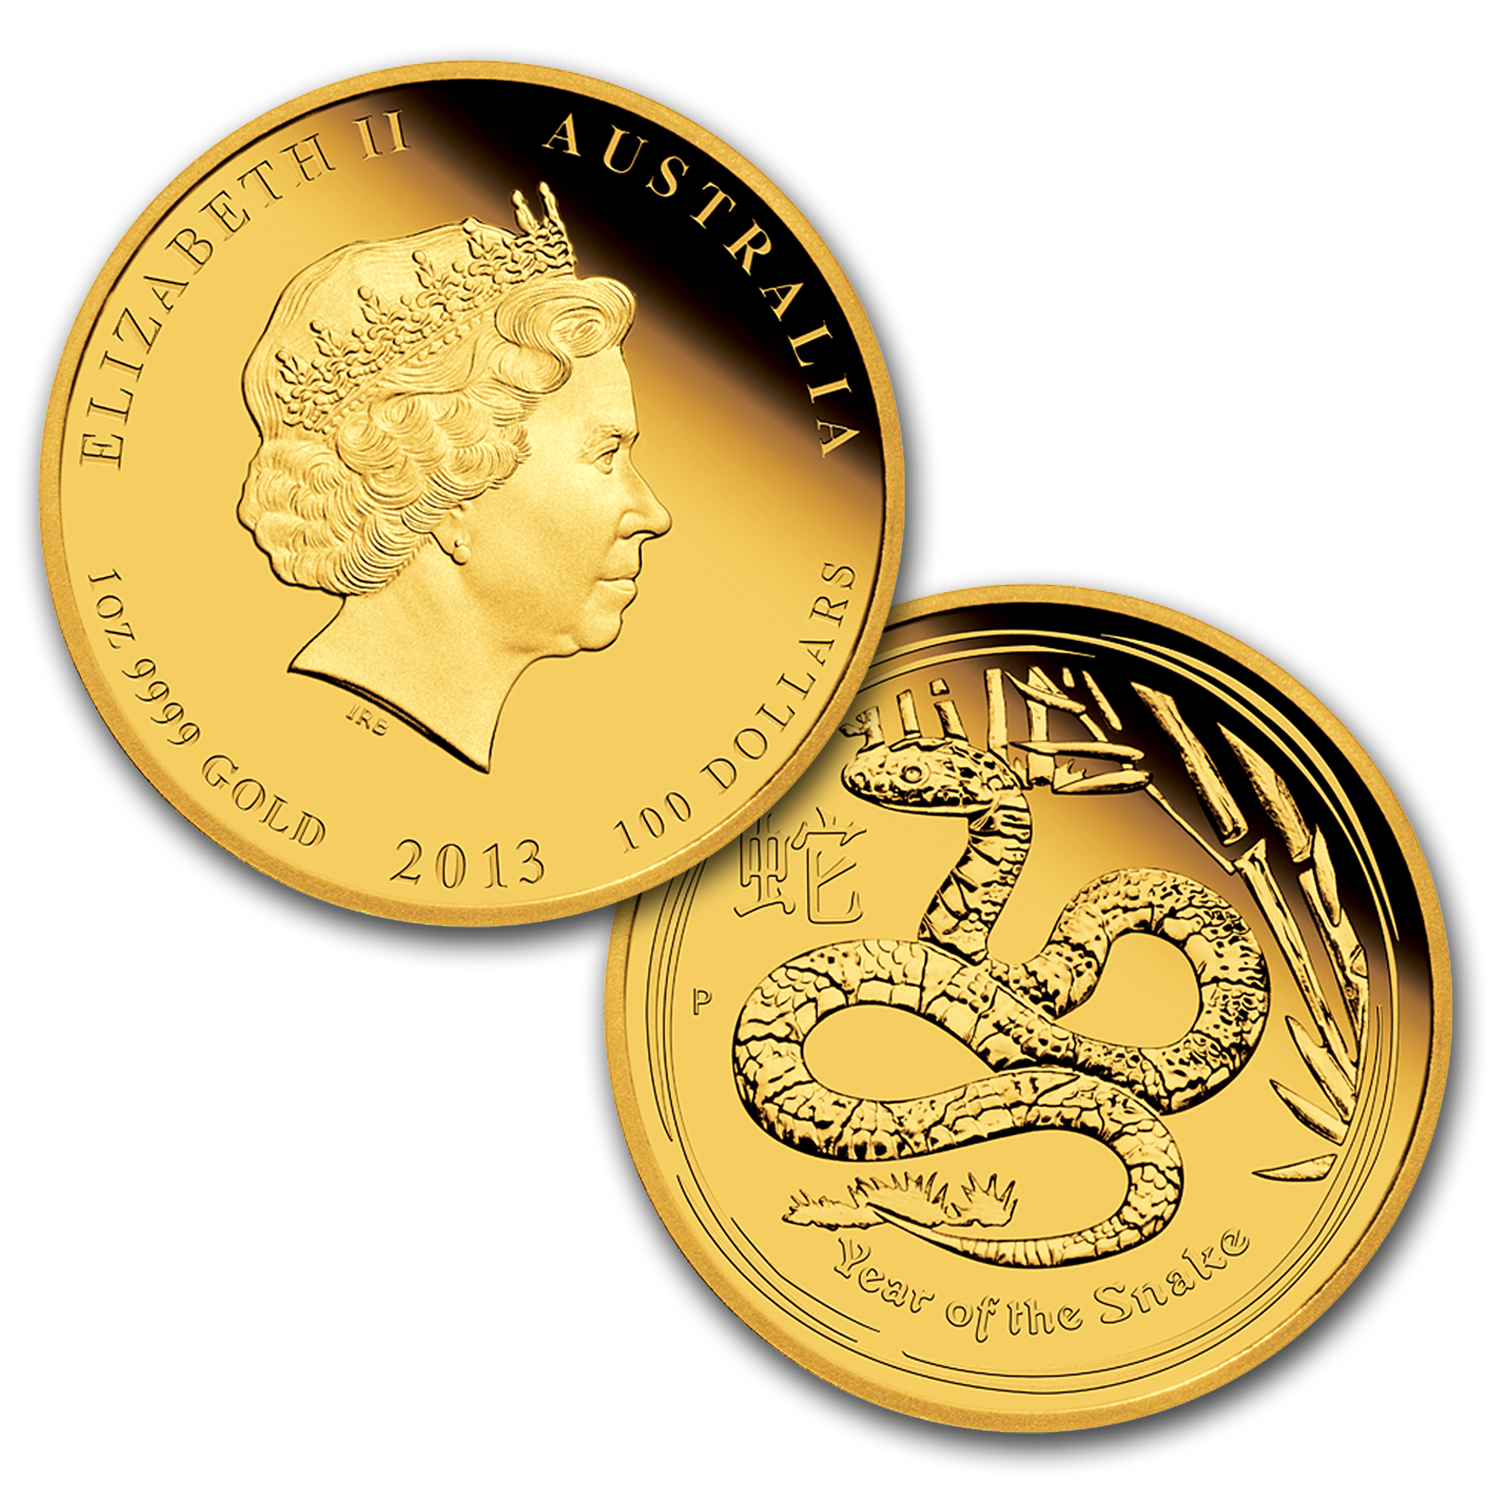 2013 Australia 3-Coin Gold Snake Proof Set (Series II)